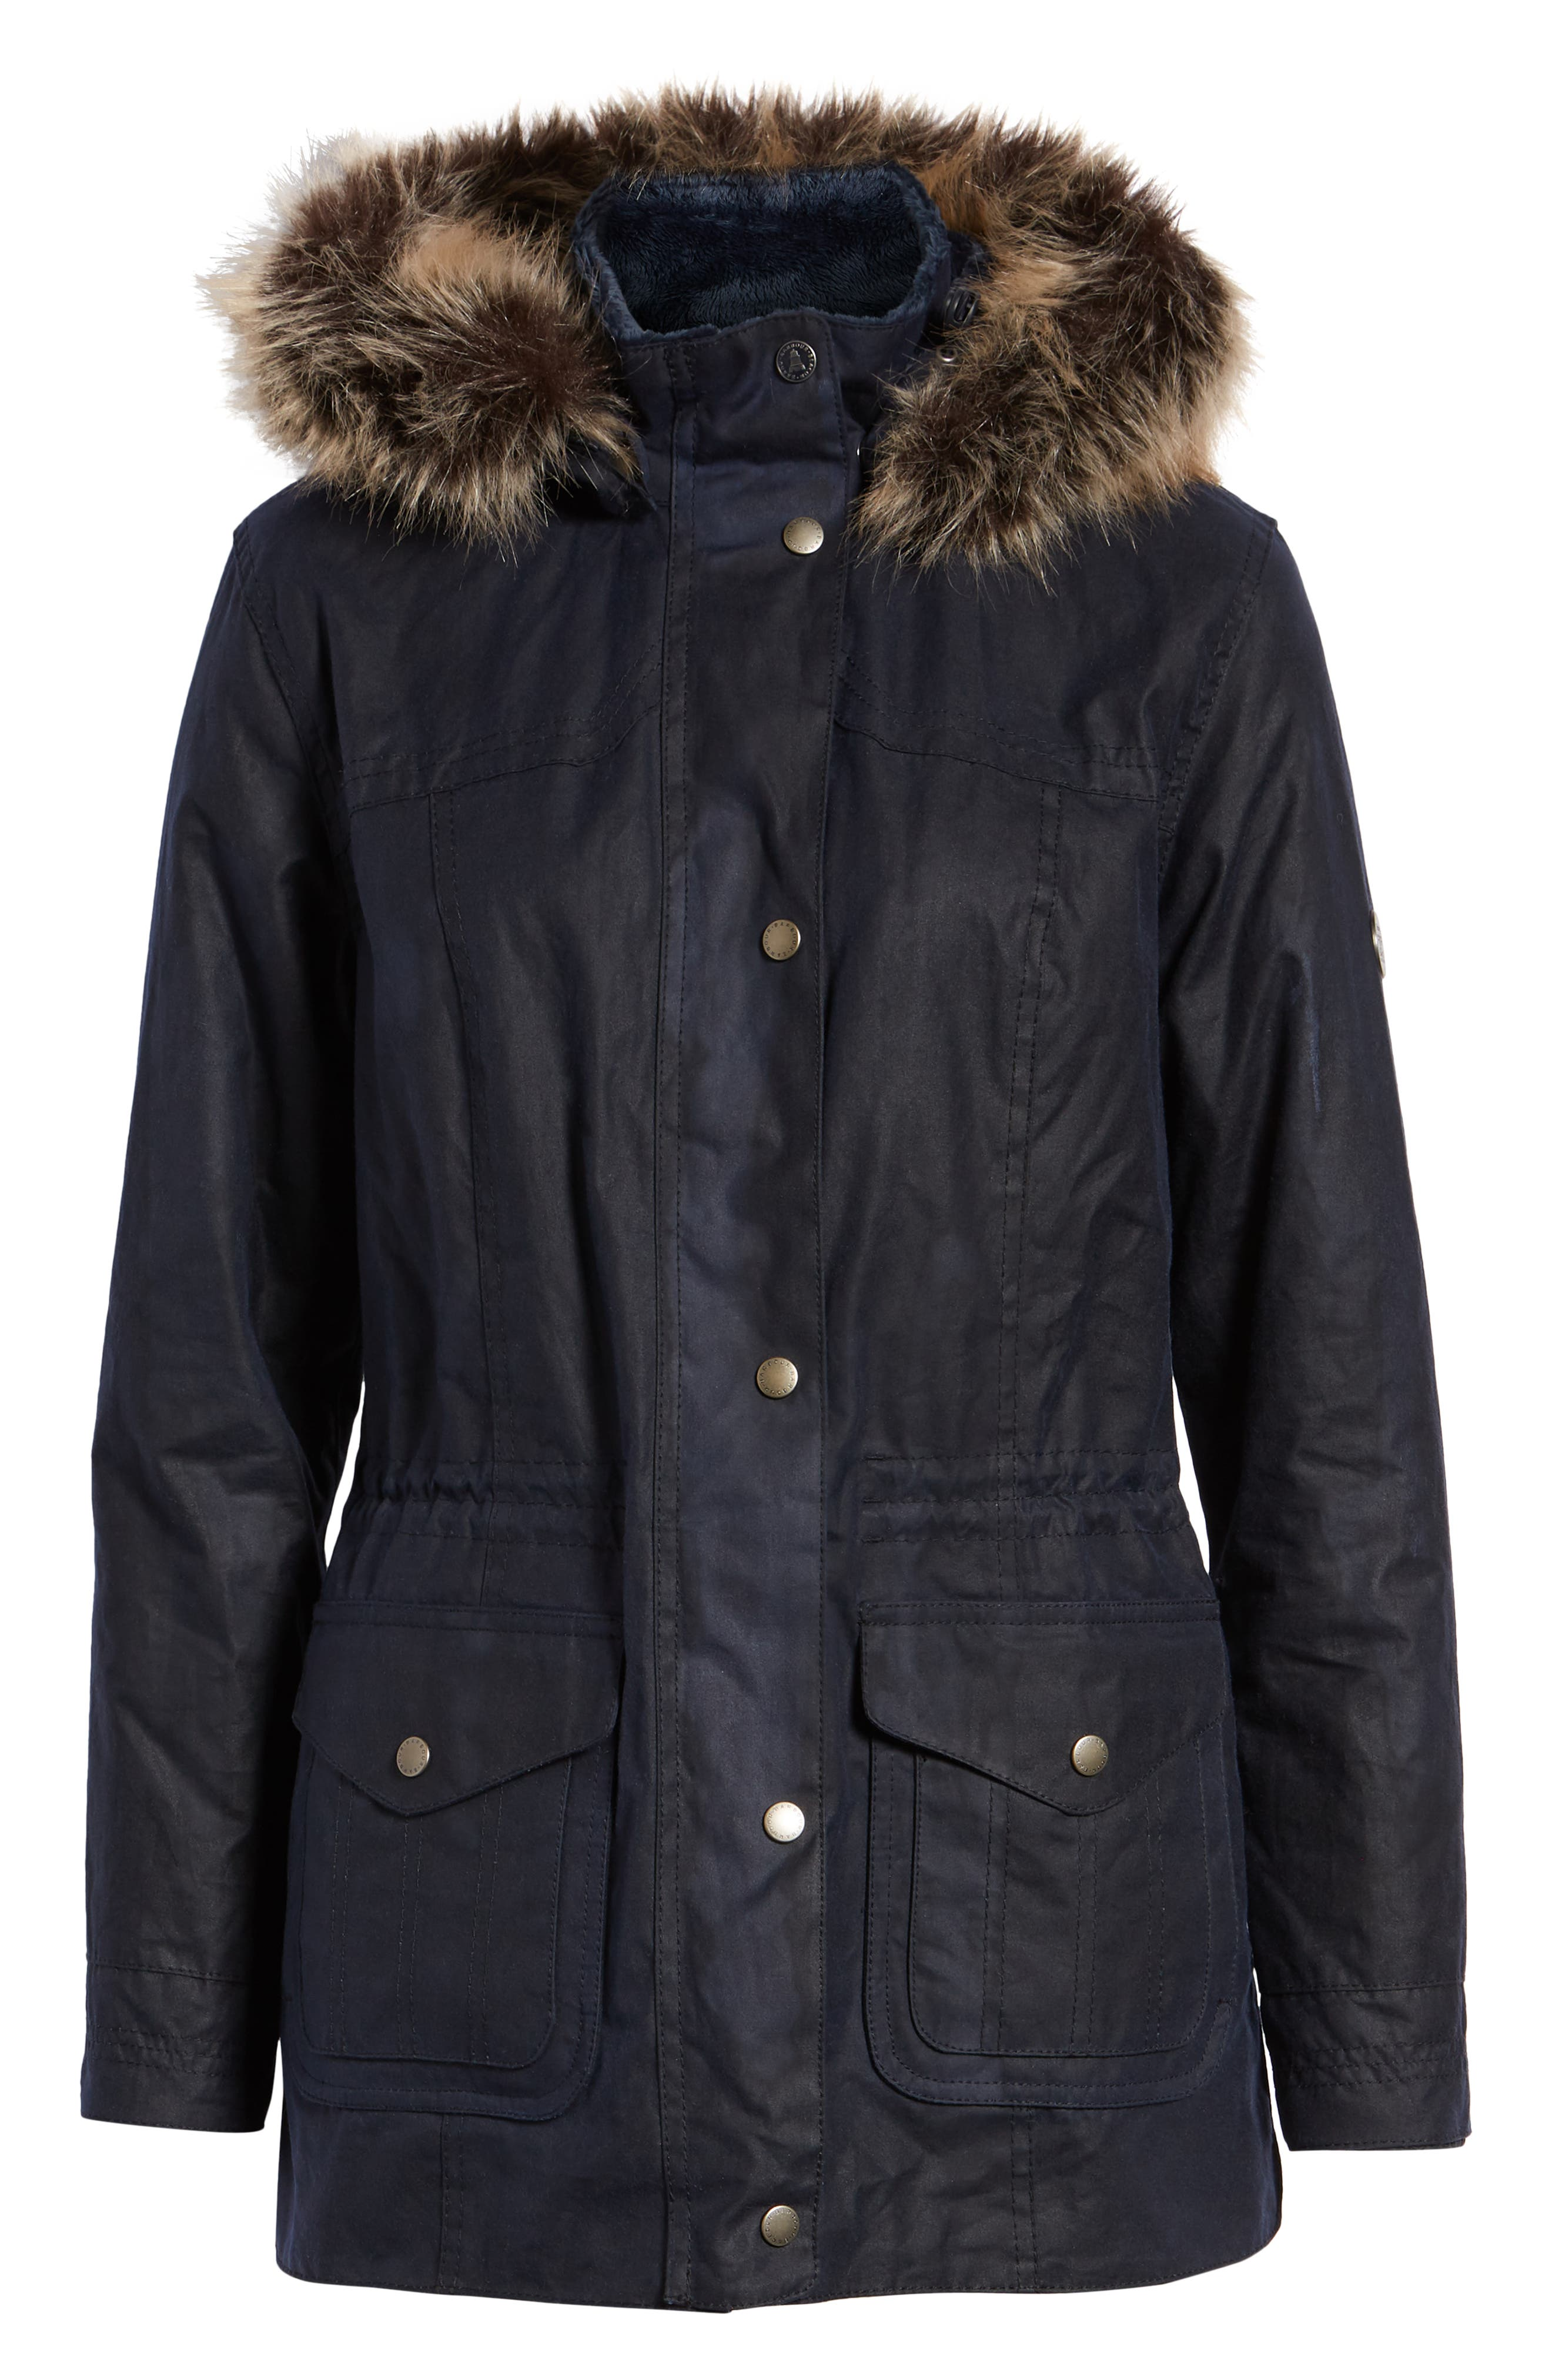 Southwold Jacket with Faux Fur Lining & Trim,                             Alternate thumbnail 6, color,                             ROYAL NAVY